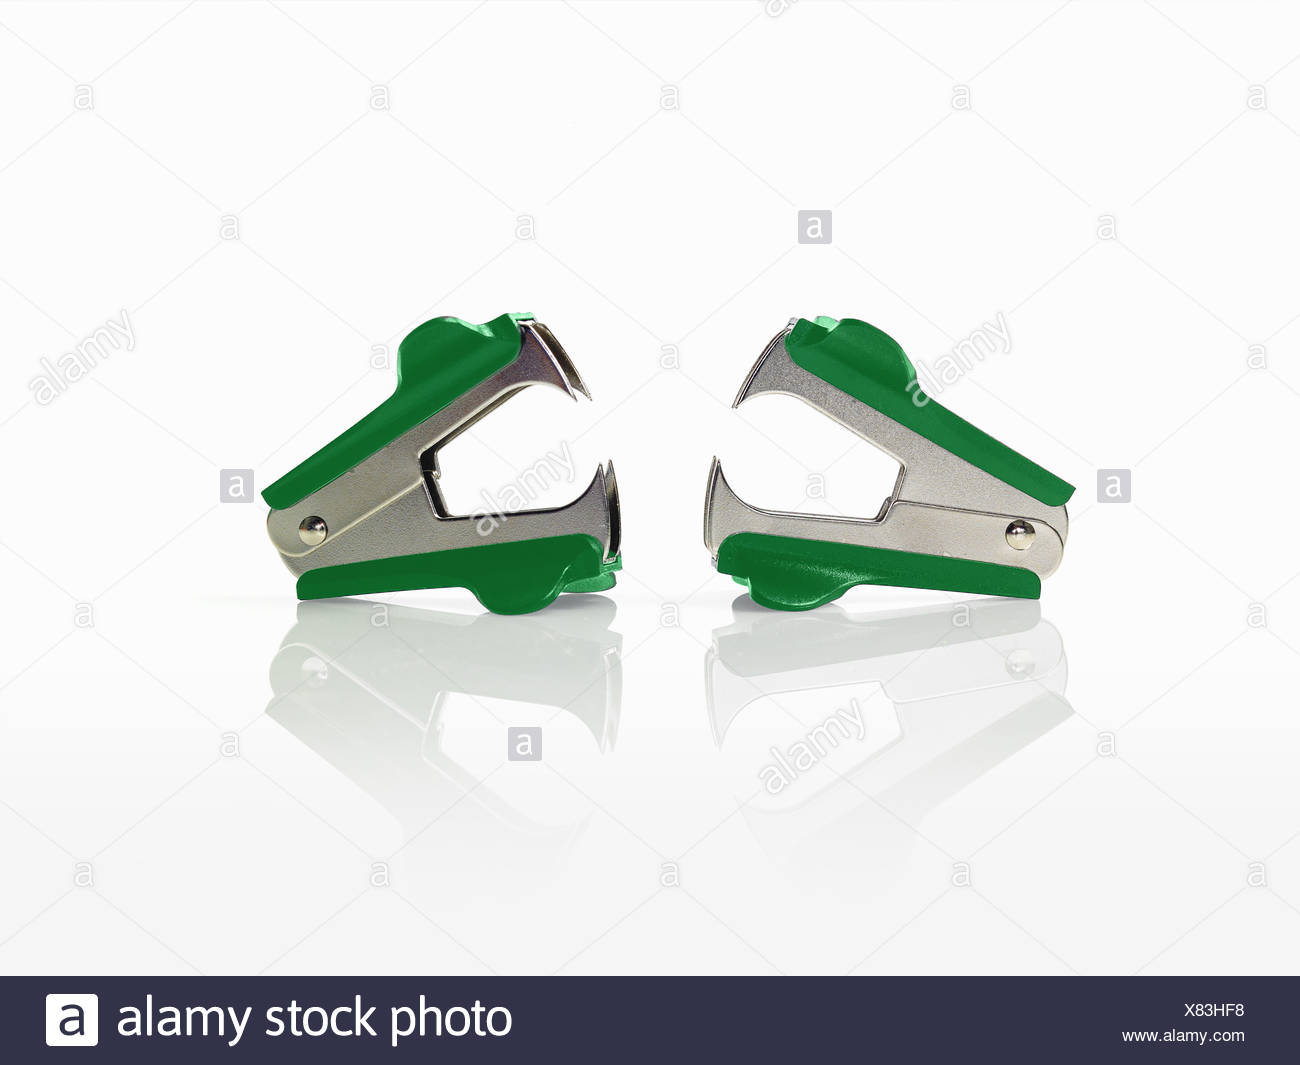 Two paperclip pincer removers. - Stock Image